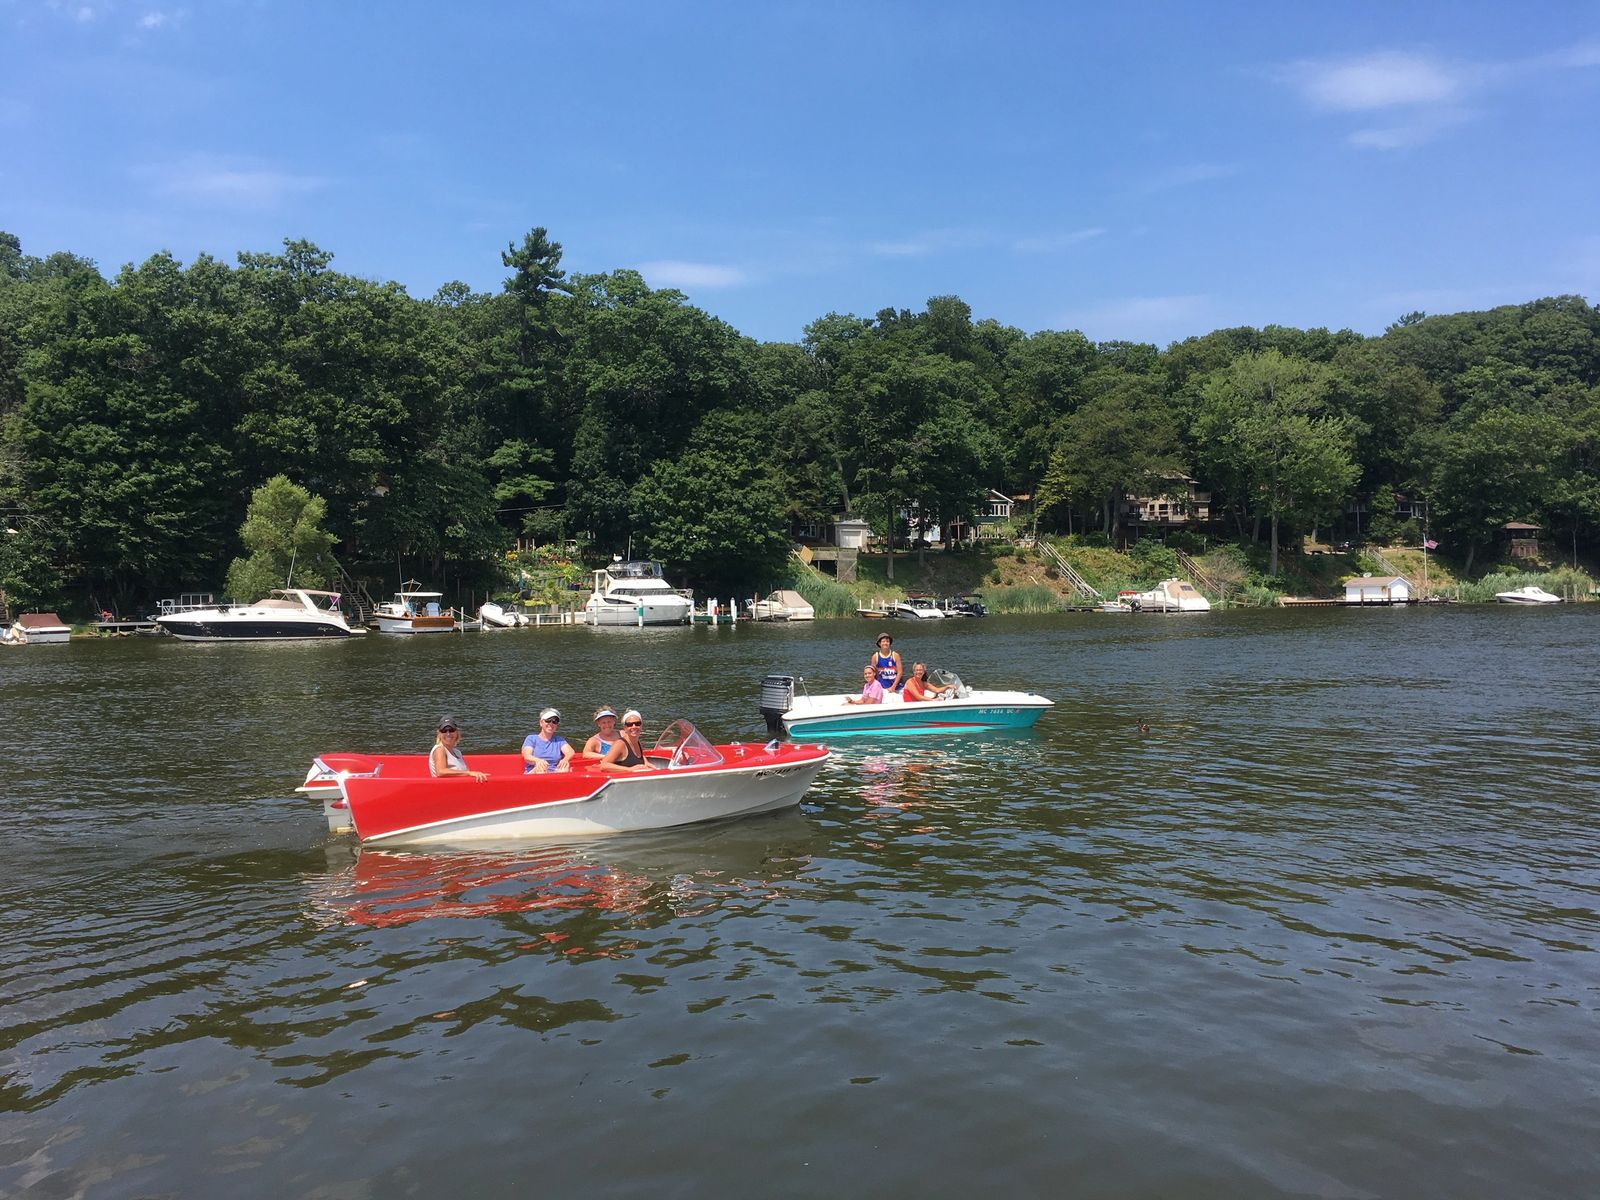 Kalamazoo River with Retro Boat Rentals